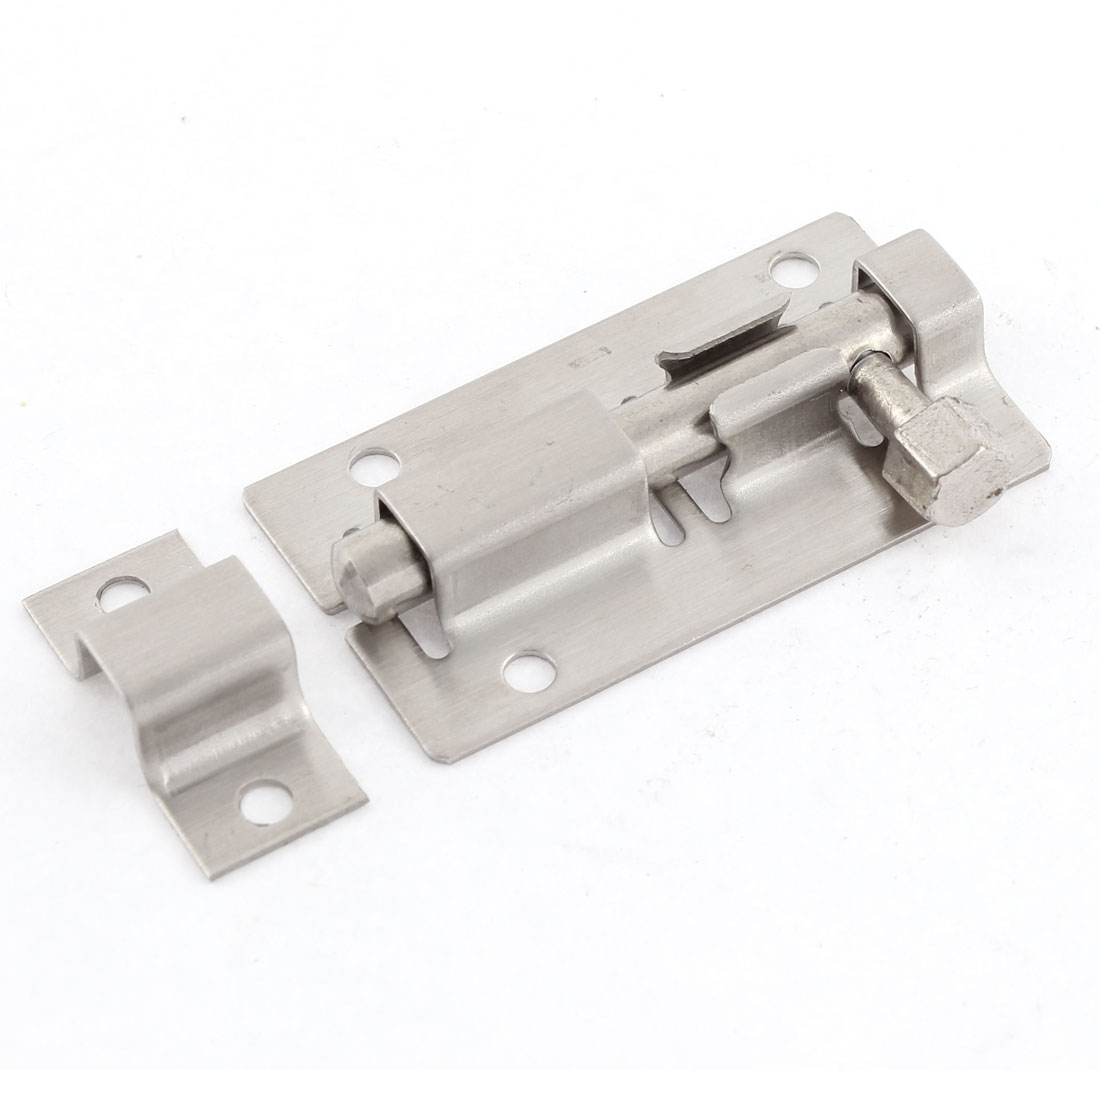 Stainless Steel Gate Lock Safety Door Barrel Bolt Latch Hasp Stapler 2""